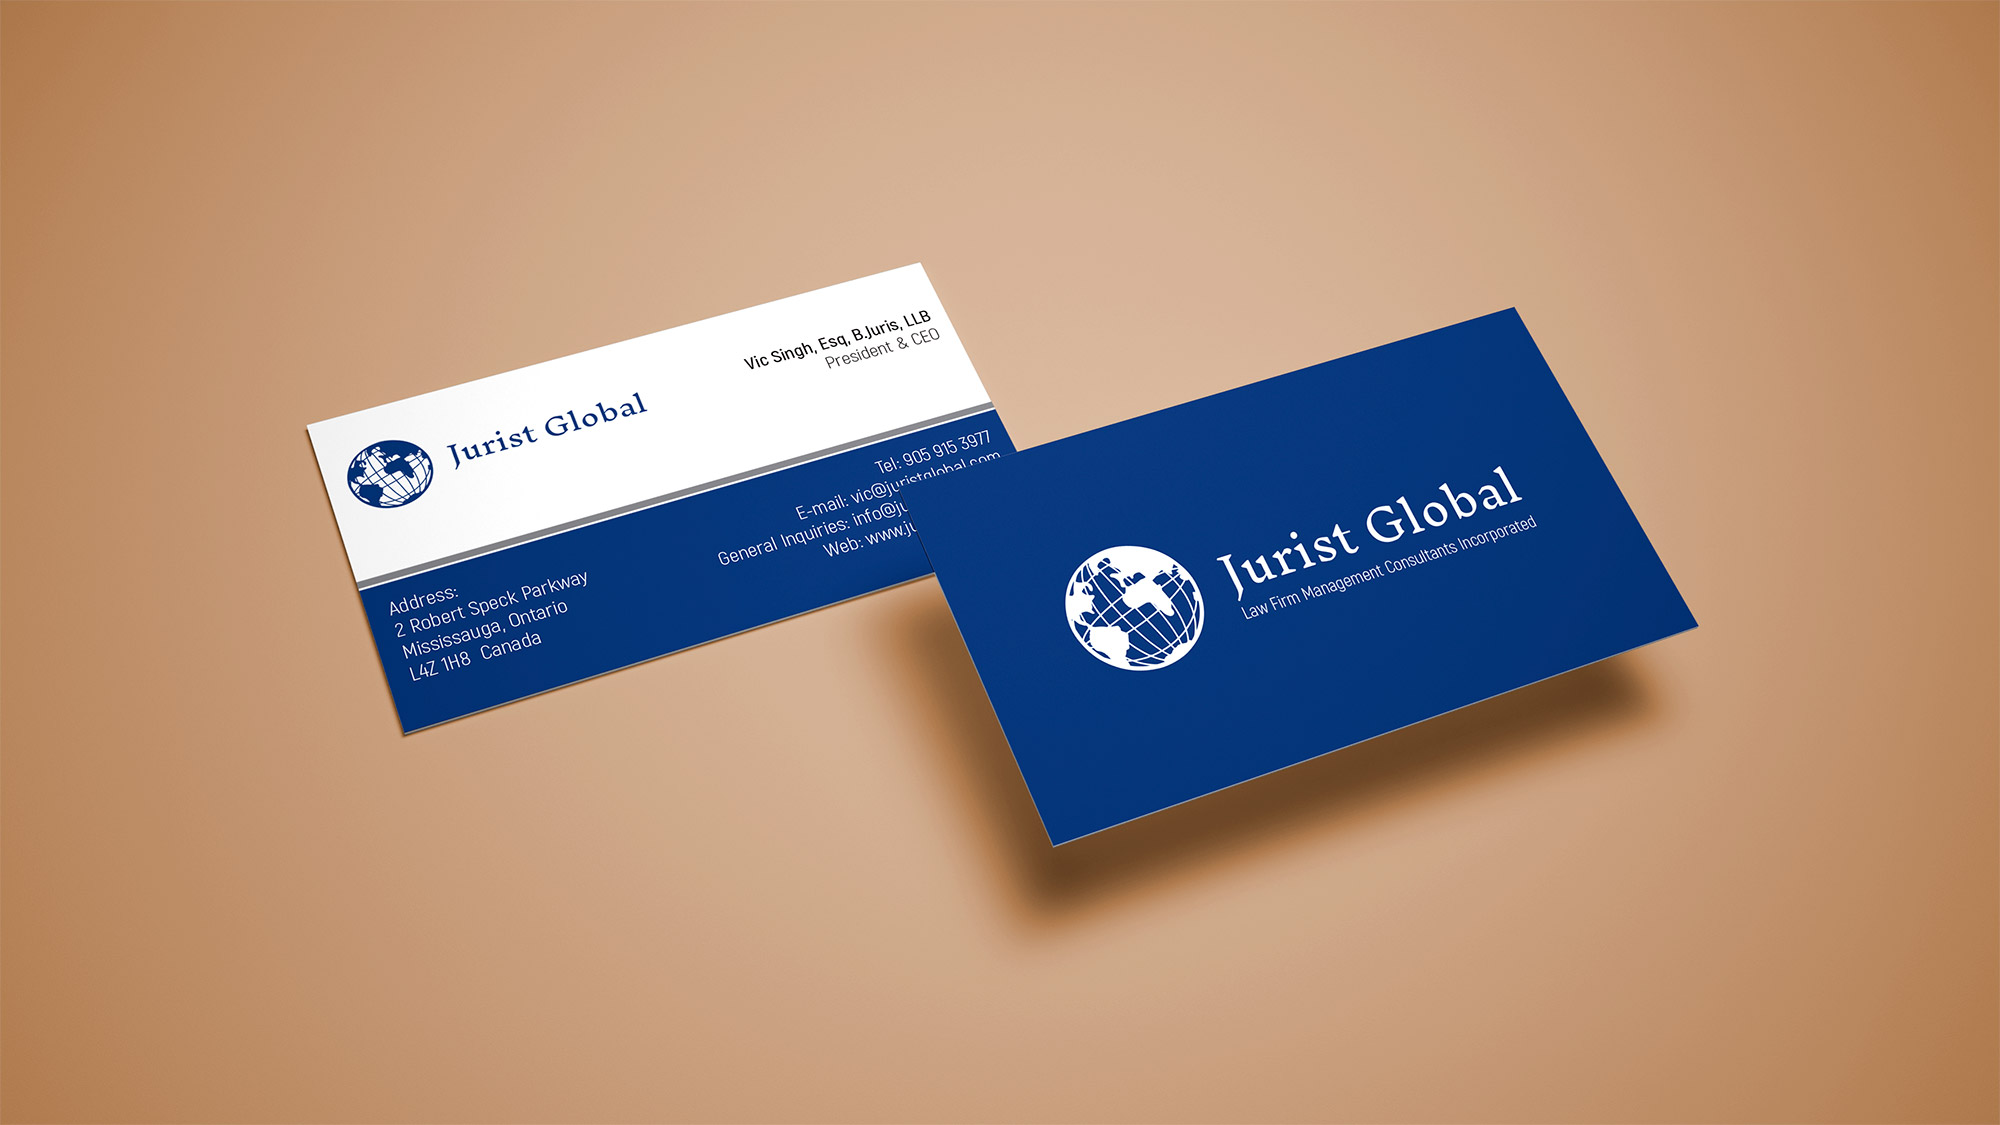 Business cards in canada online choice image card design and card colorful business cards ontario ensign business card ideas business cards in canada online choice image card reheart Images